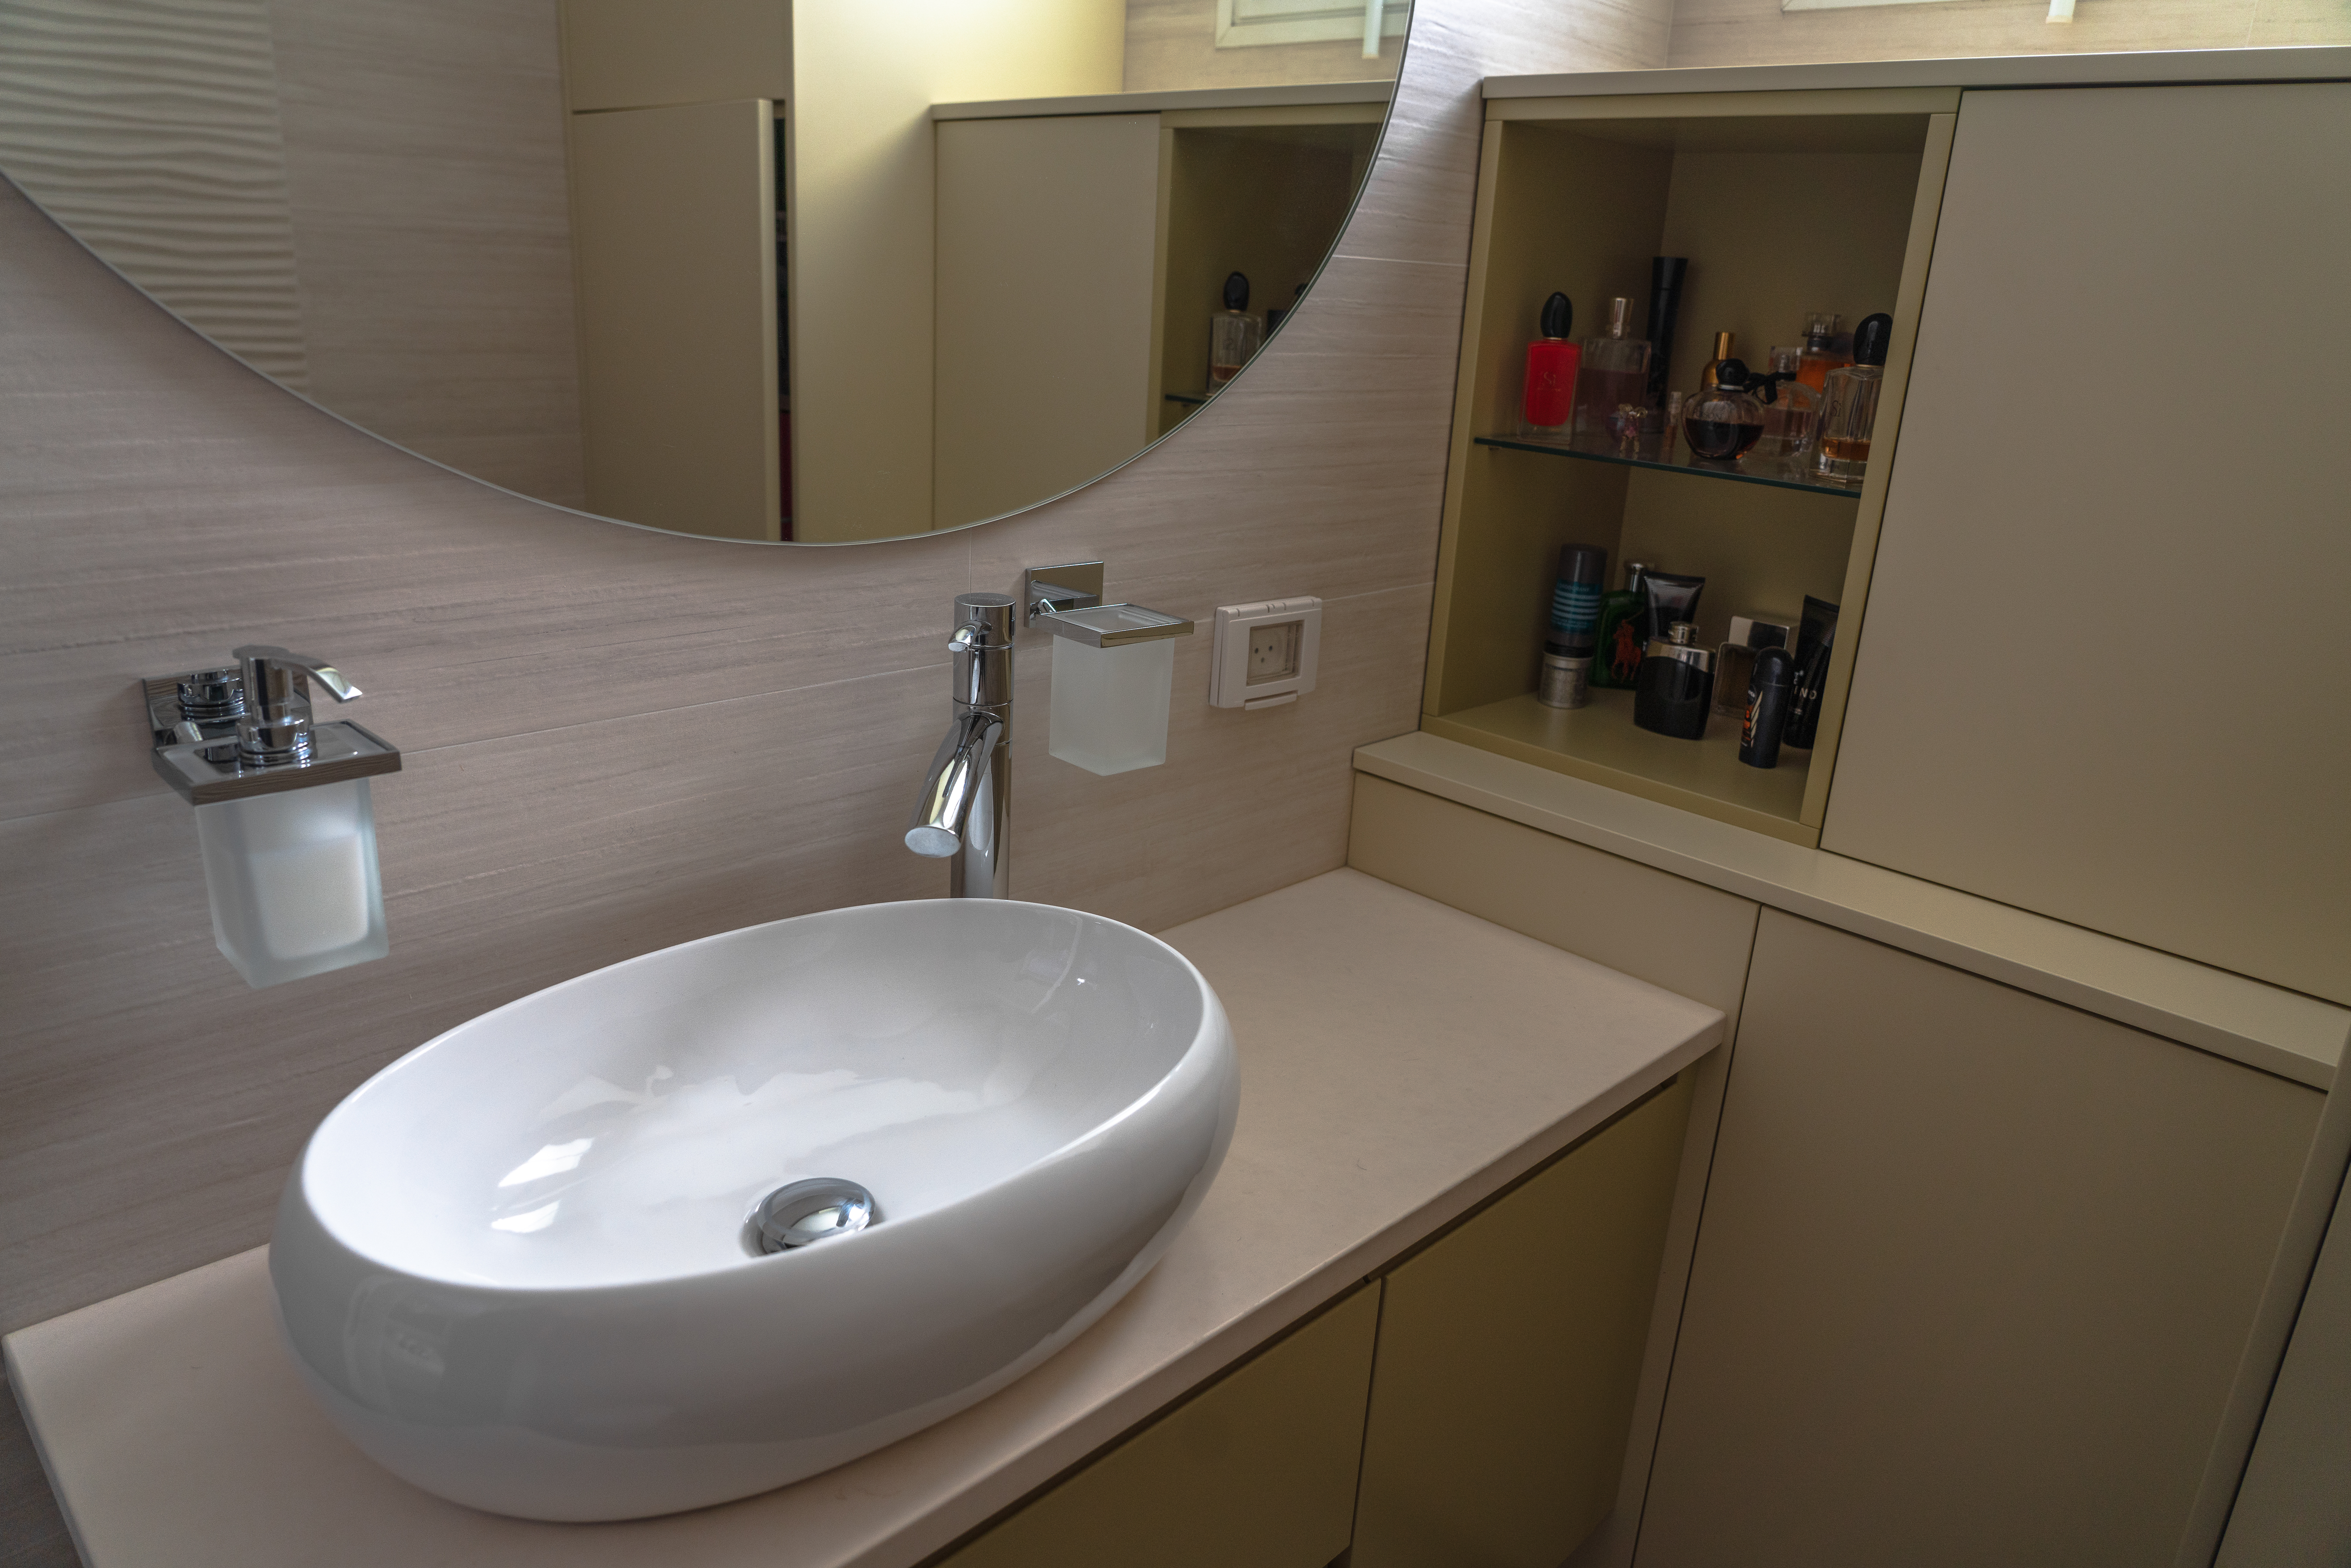 Oval sink with round mirror